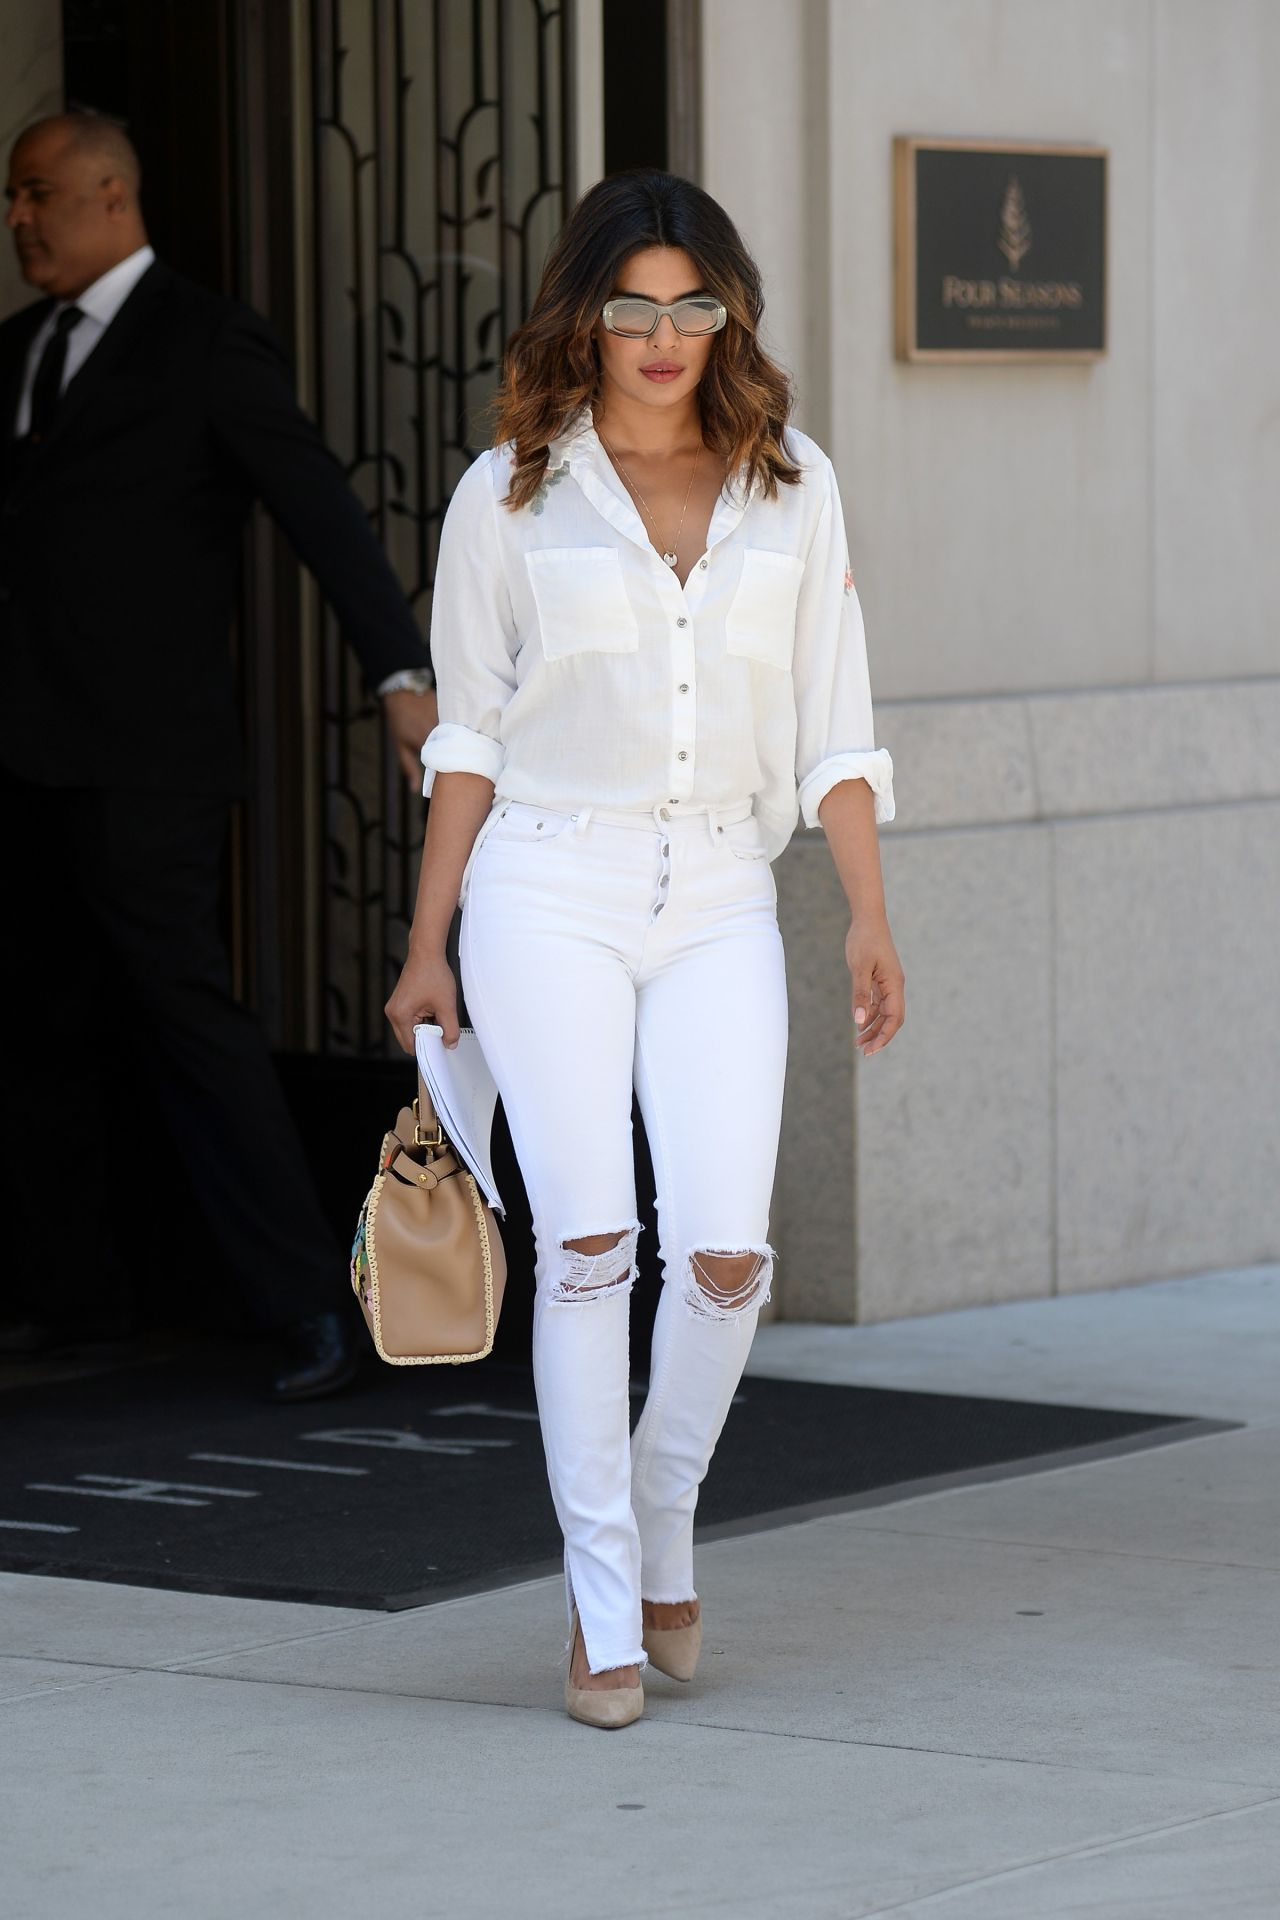 https://celebmafia.com/wp-content/uploads/2018/07/priyanka-chopra-in-all-white-in-new-york-city-07-05-2018-2.jpg